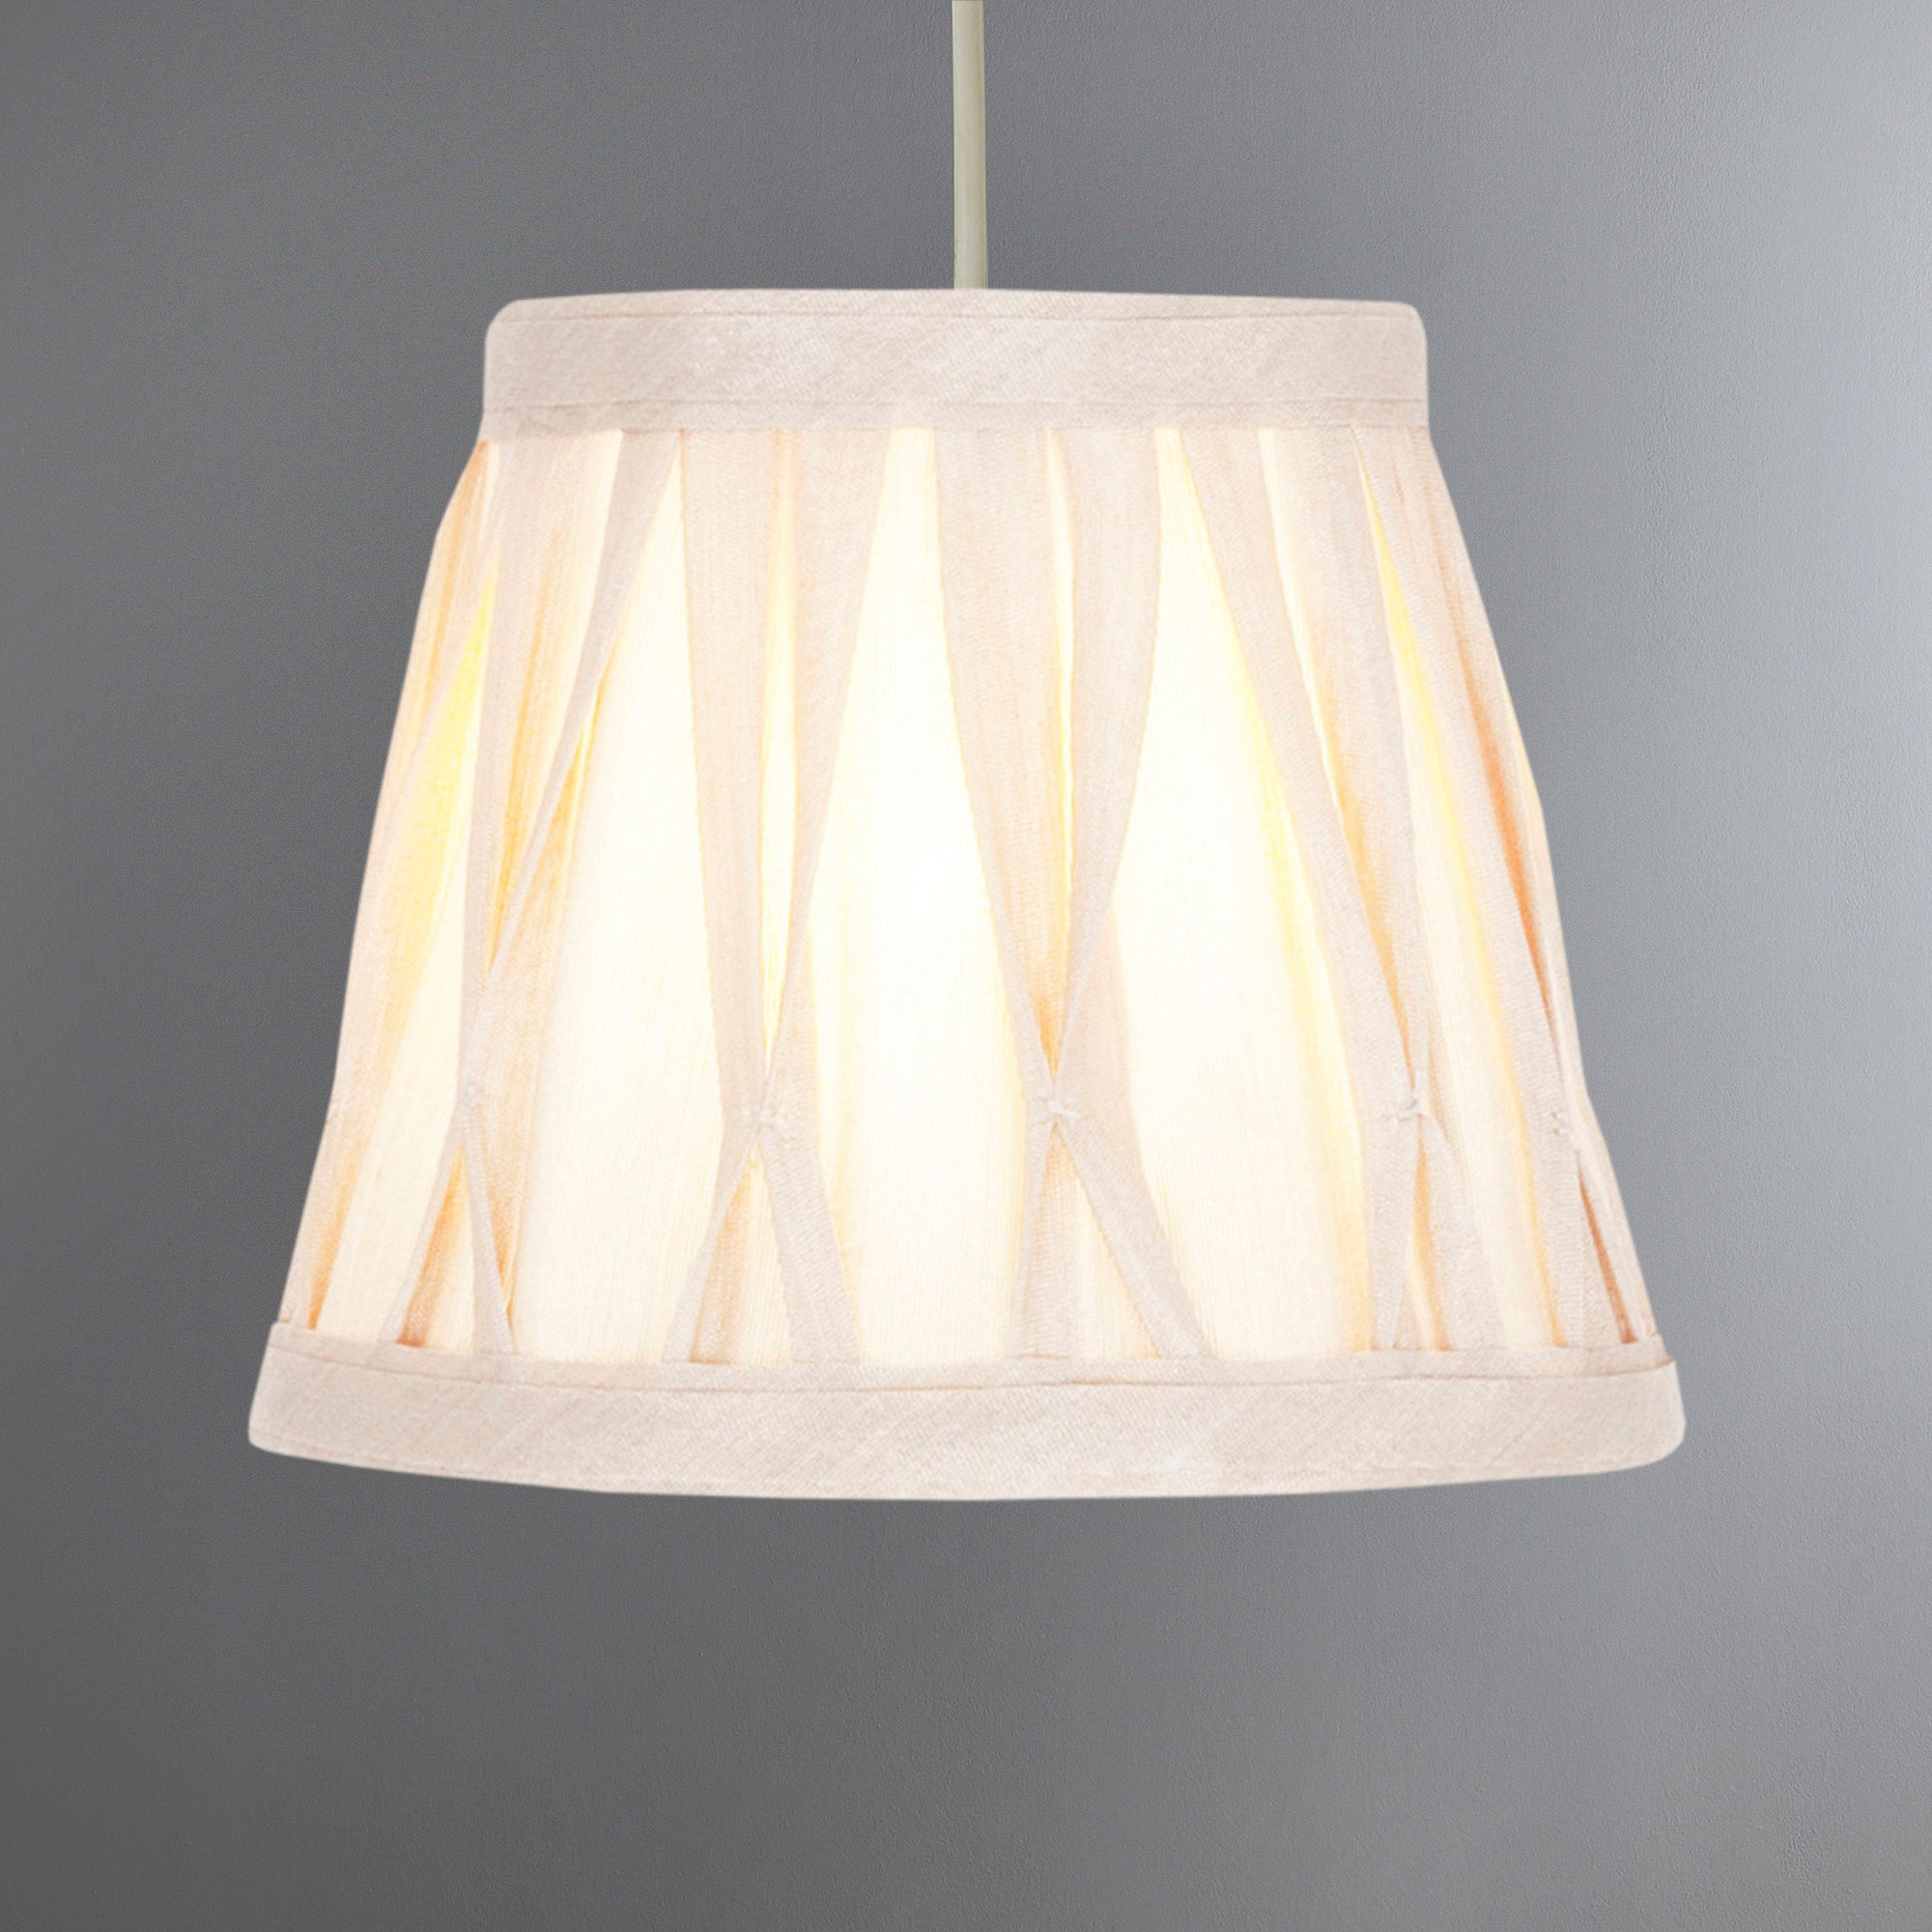 Valerie Pinch Pleat Candle Light Shade